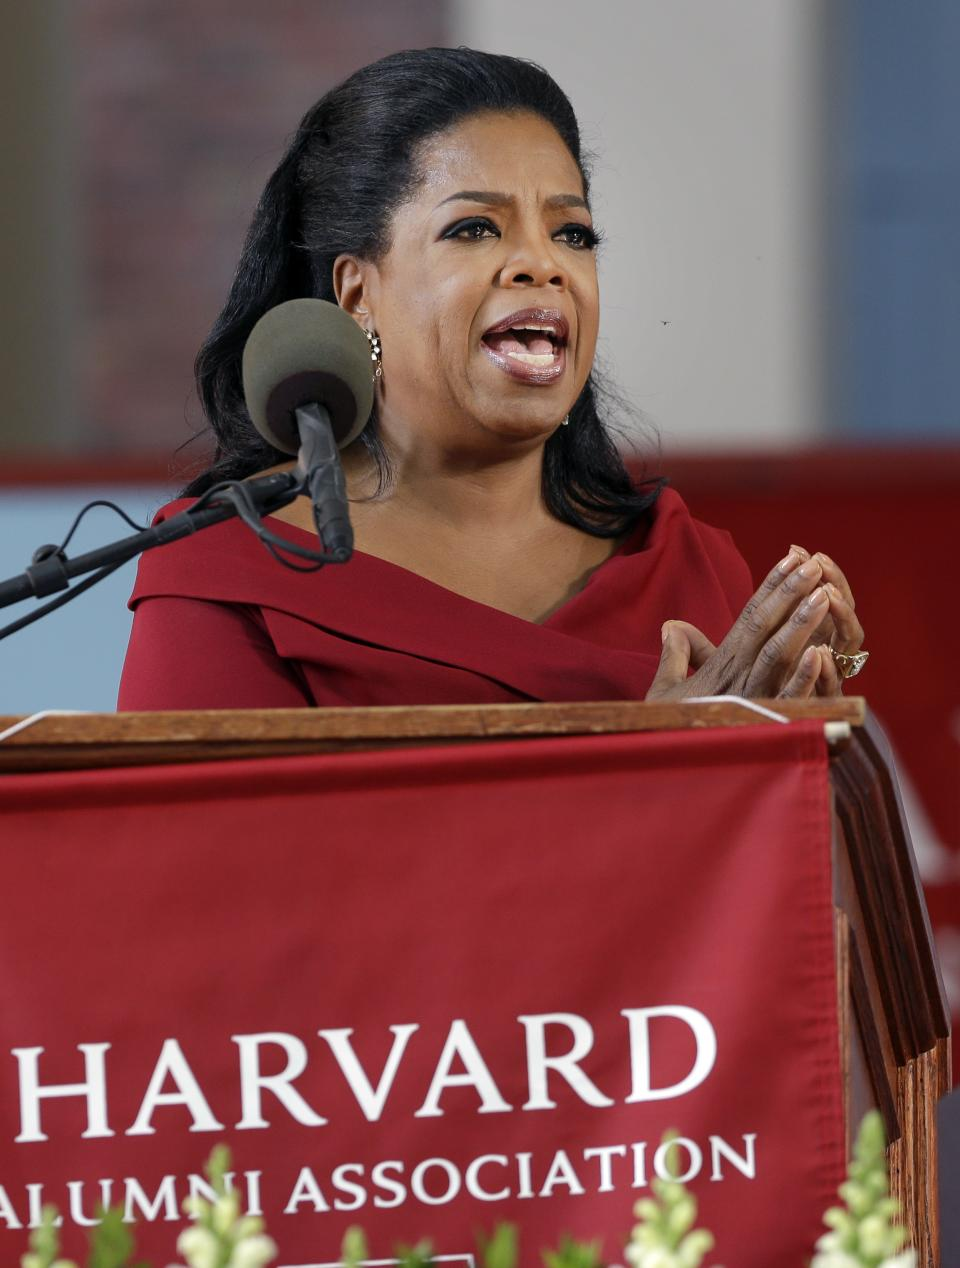 Oprah Winfrey speaks during Harvard University's commencement ceremonies in Cambridge, Mass., Thursday, May 30, 2013. She earlier received an honorary Doctor of Laws degree. (AP Photo/Elise Amendola)